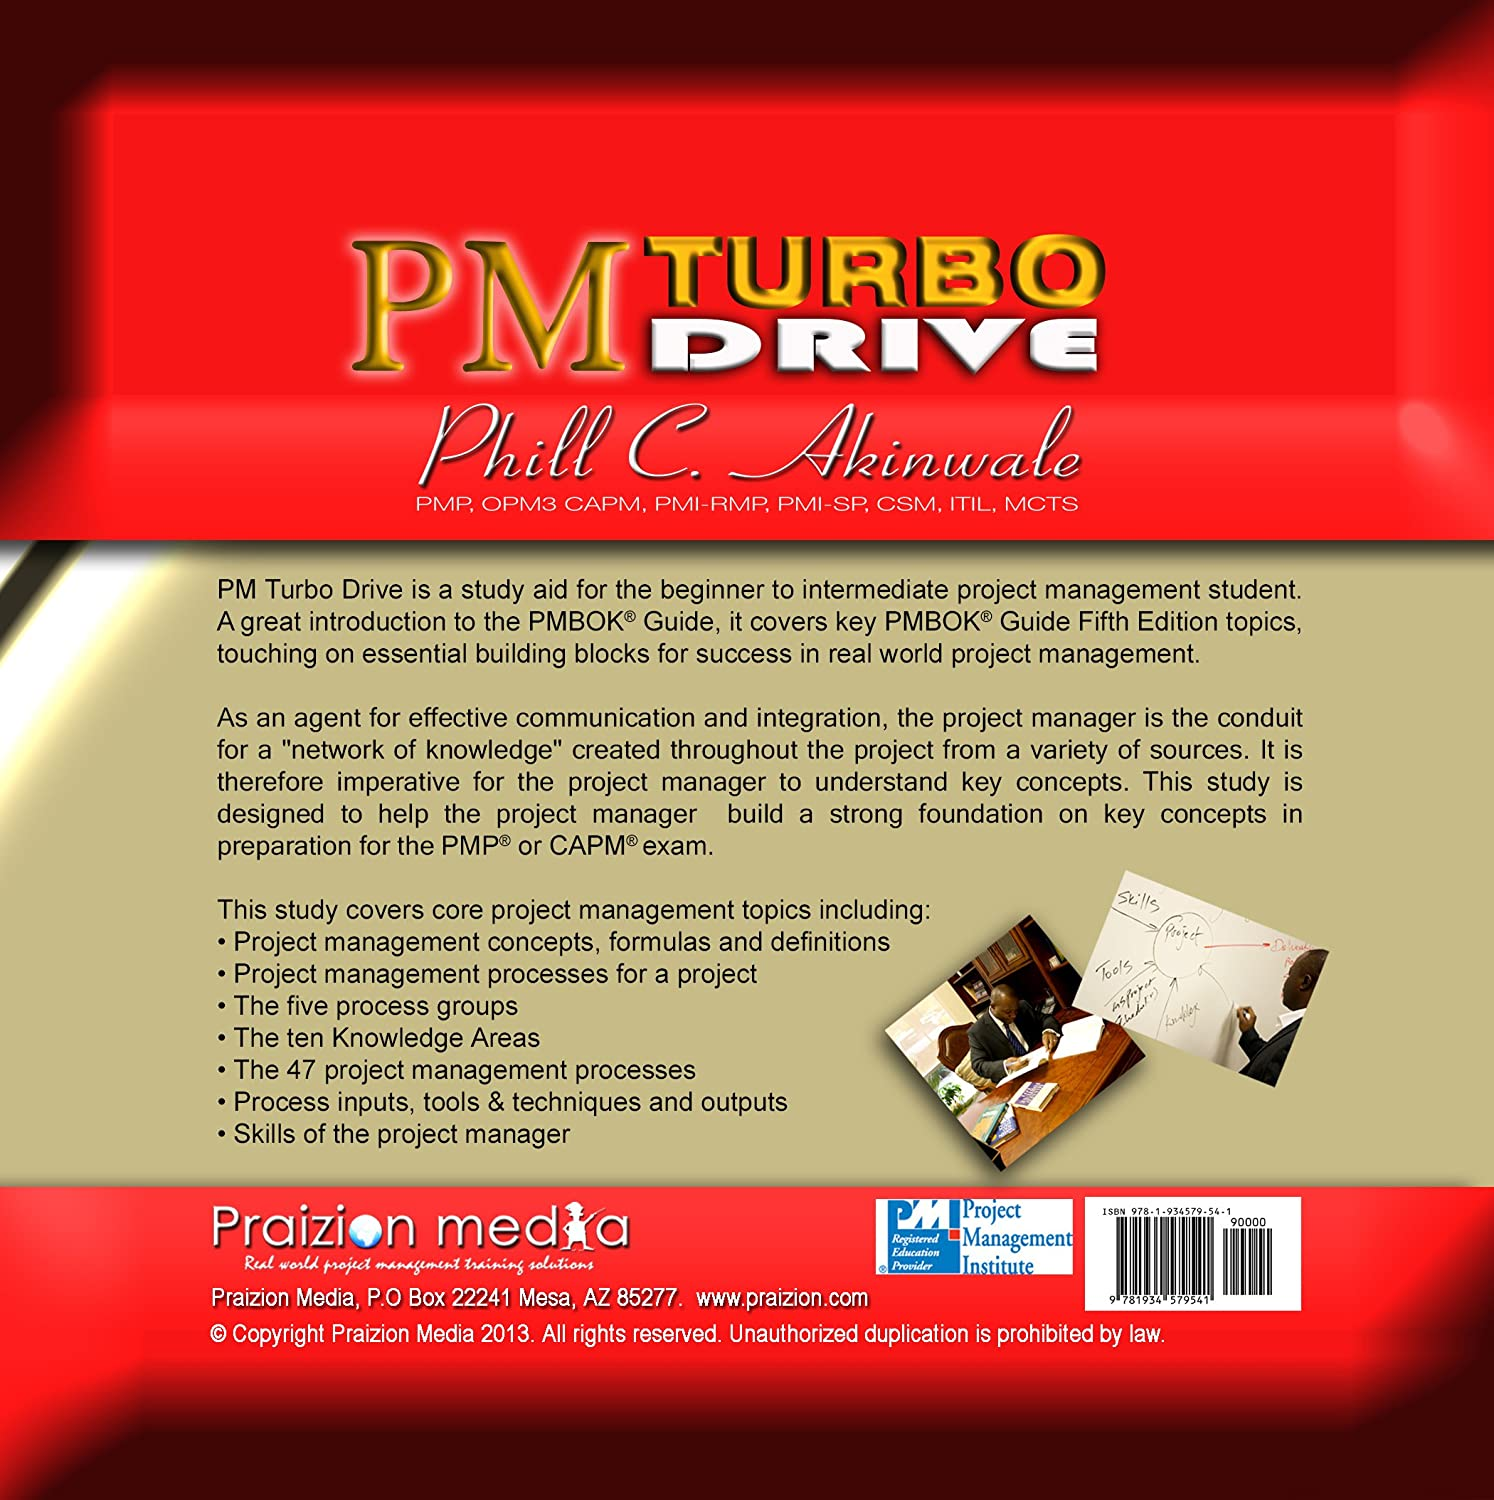 Amazon.com: PMP Exam Turbo Drive 16-DVDs-8 hours (PMBOK Fifth Ed.): PMP Phill C. Akinwale: Movies & TV